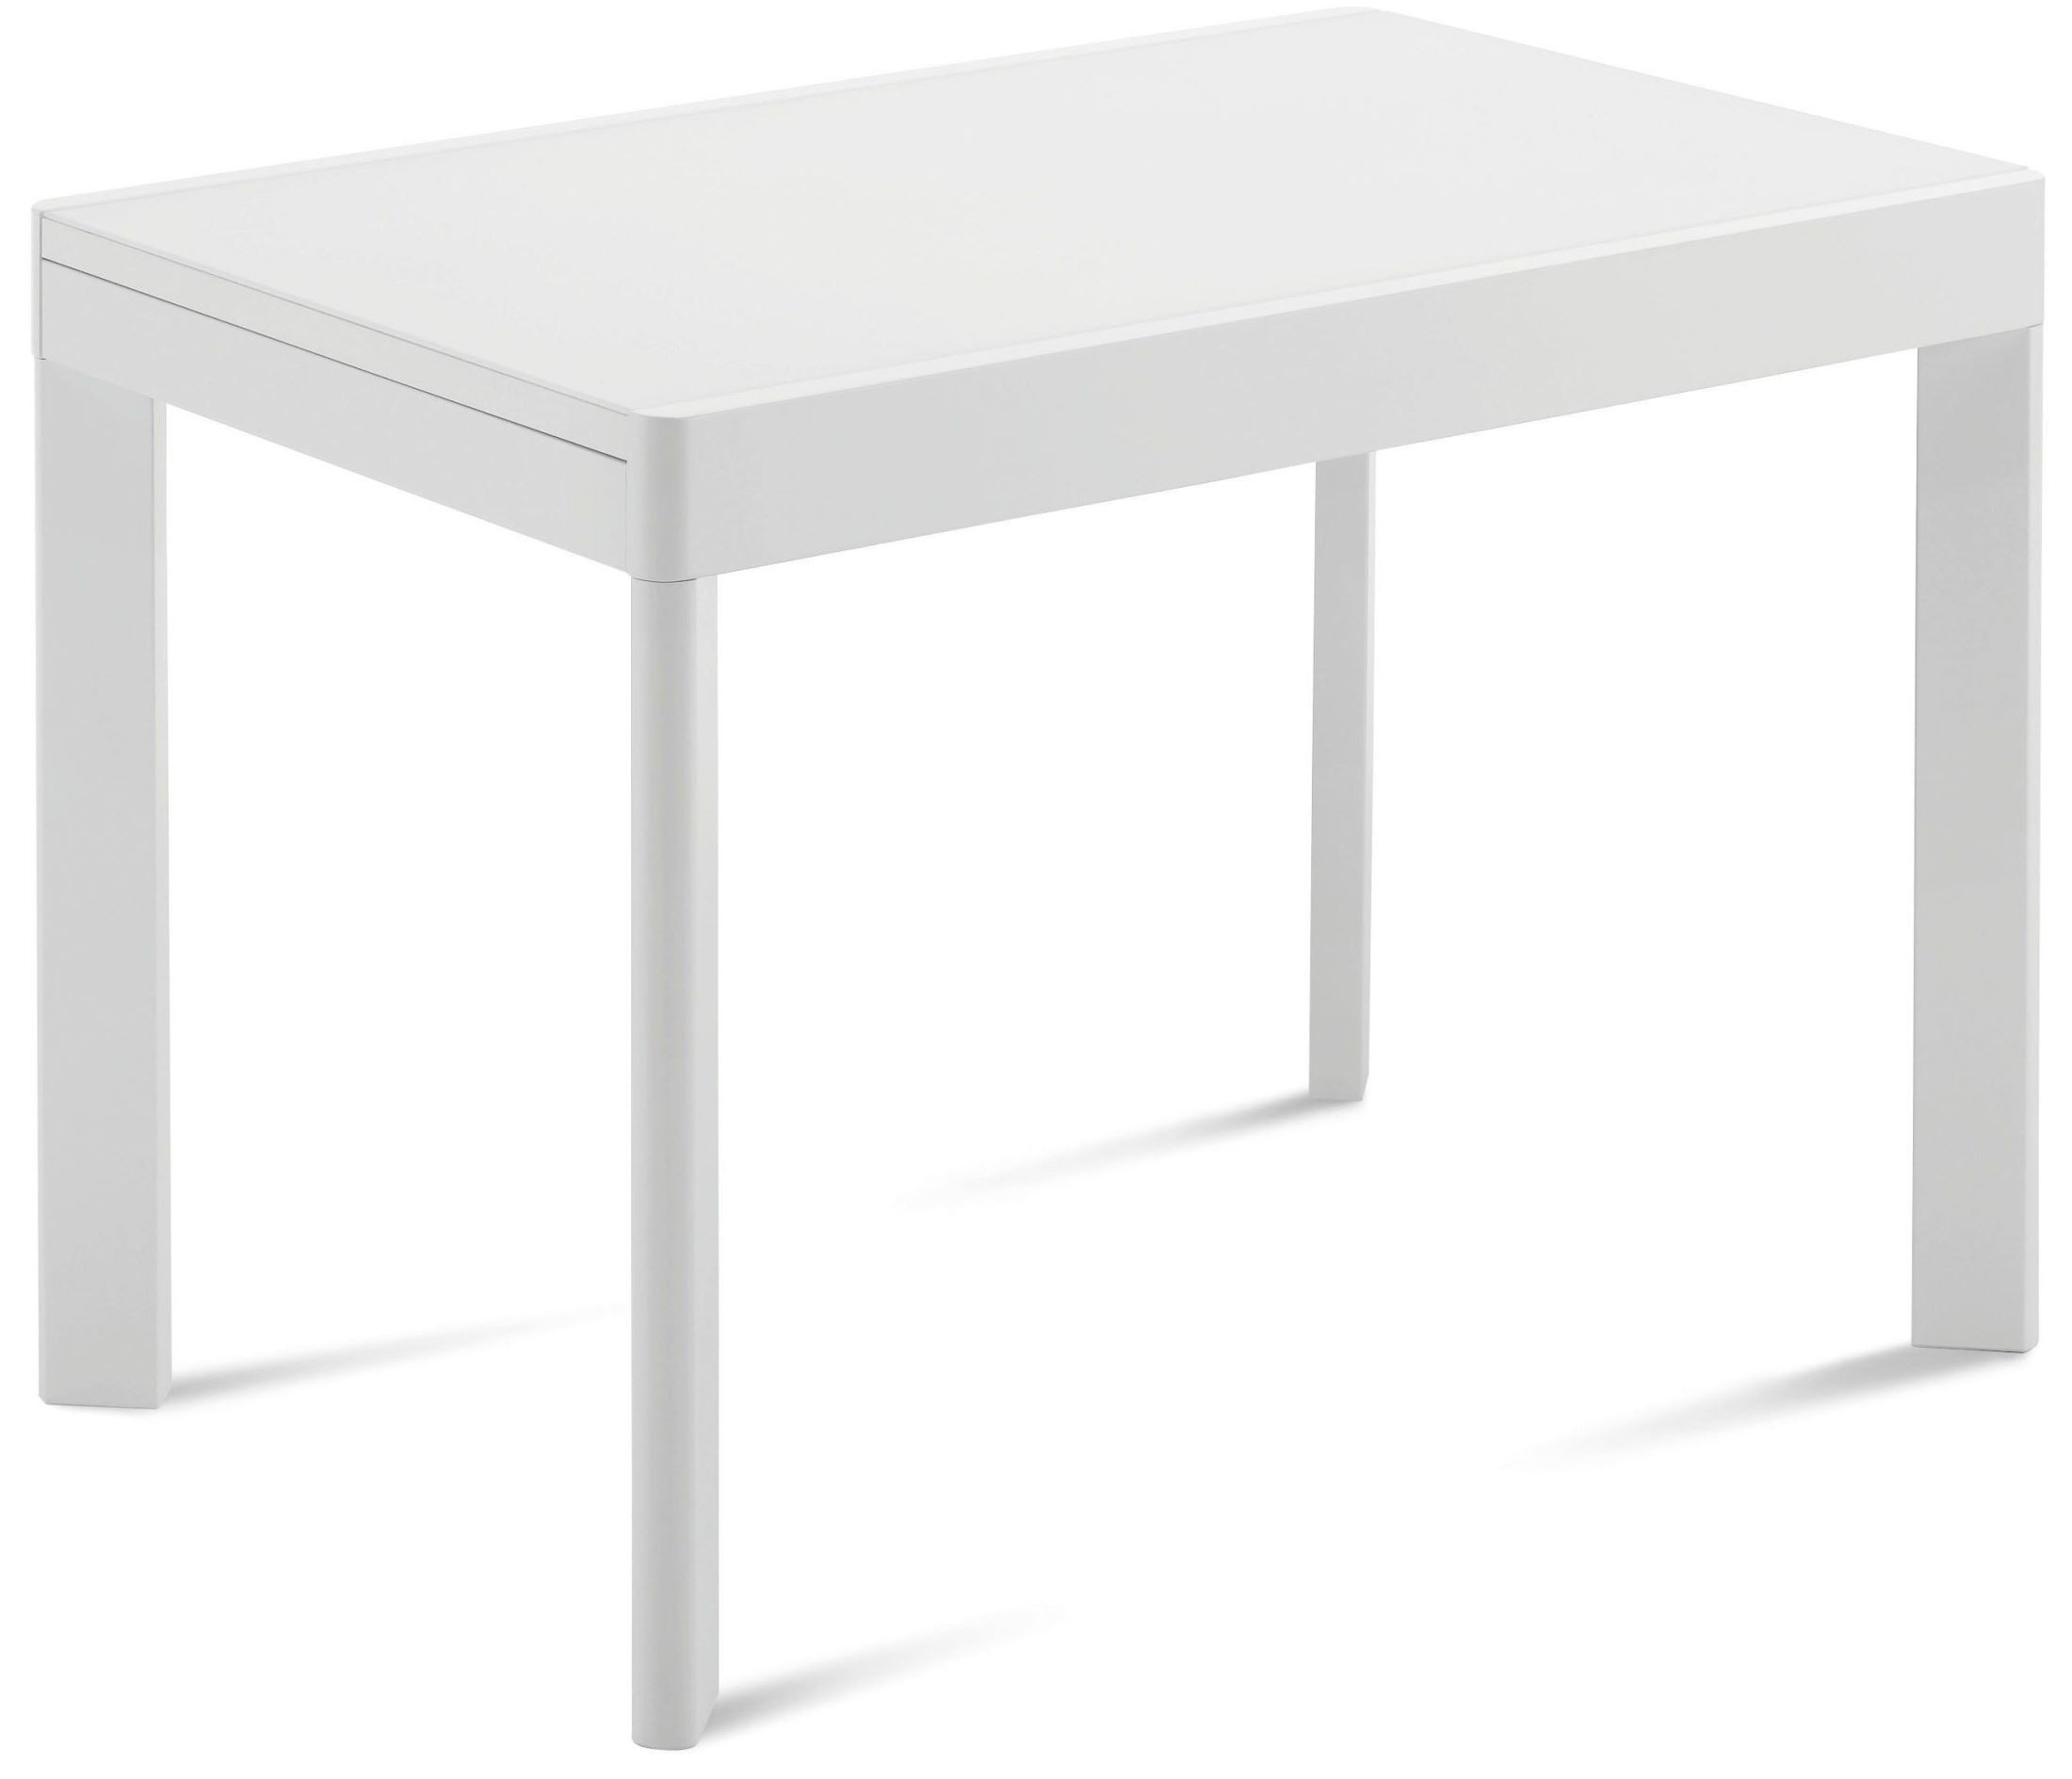 Rectangular Extendable Dining Table: Ace White Extendable Rectangular Dining Table From